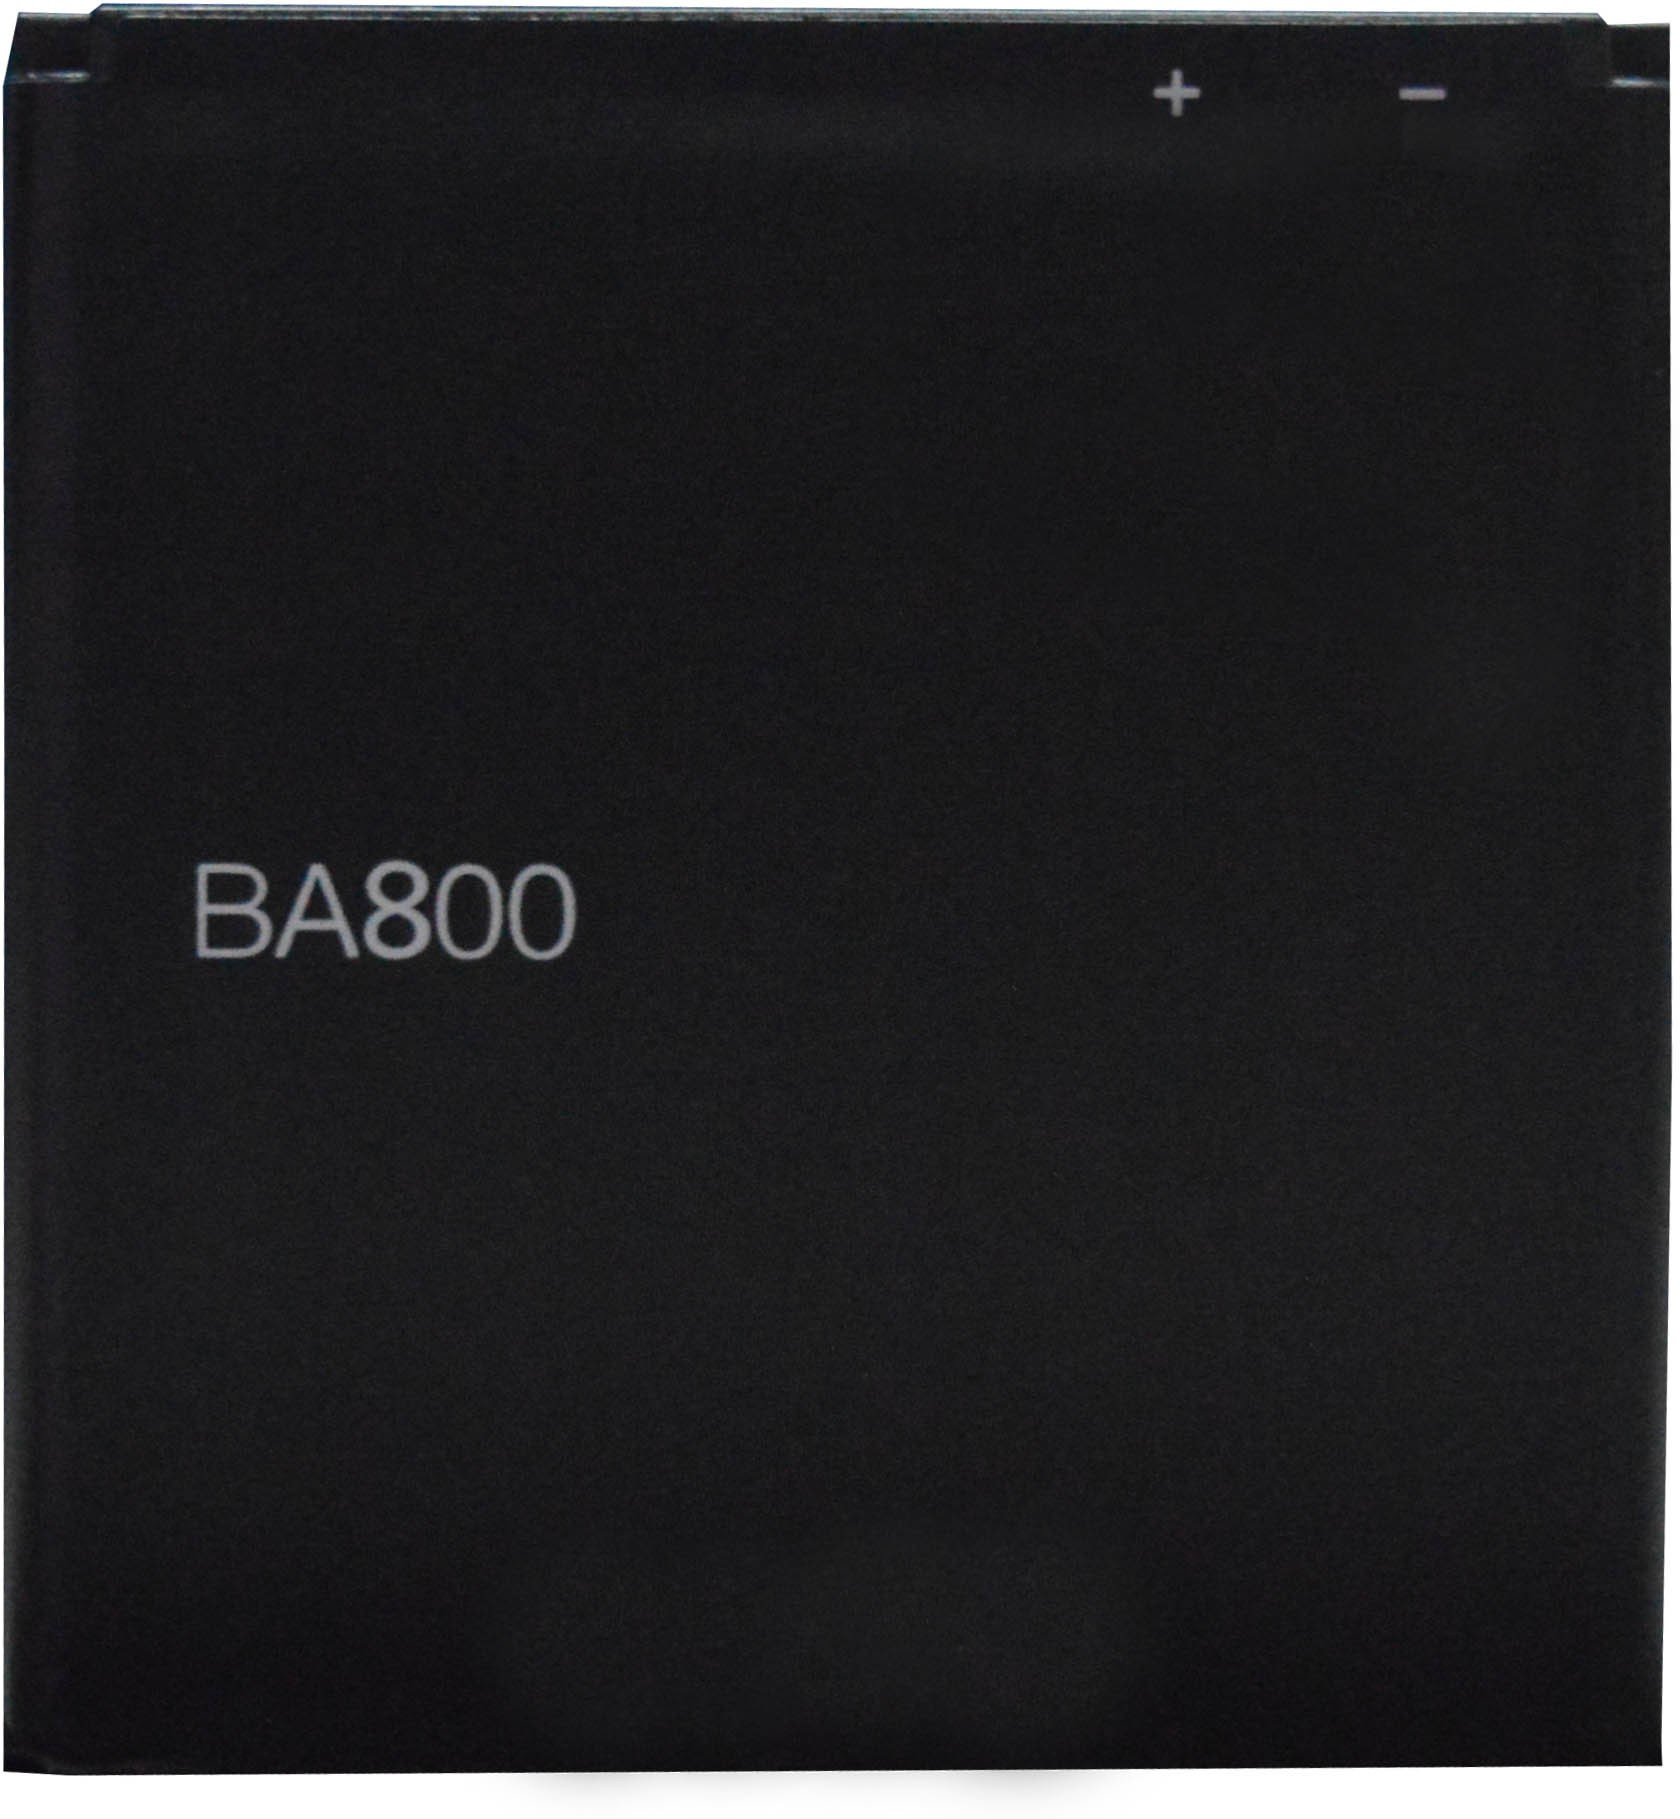 OBS  Battery - Battery For BA800 Battery Sony XPERIA S LT26i Xperia V Arc(Black)